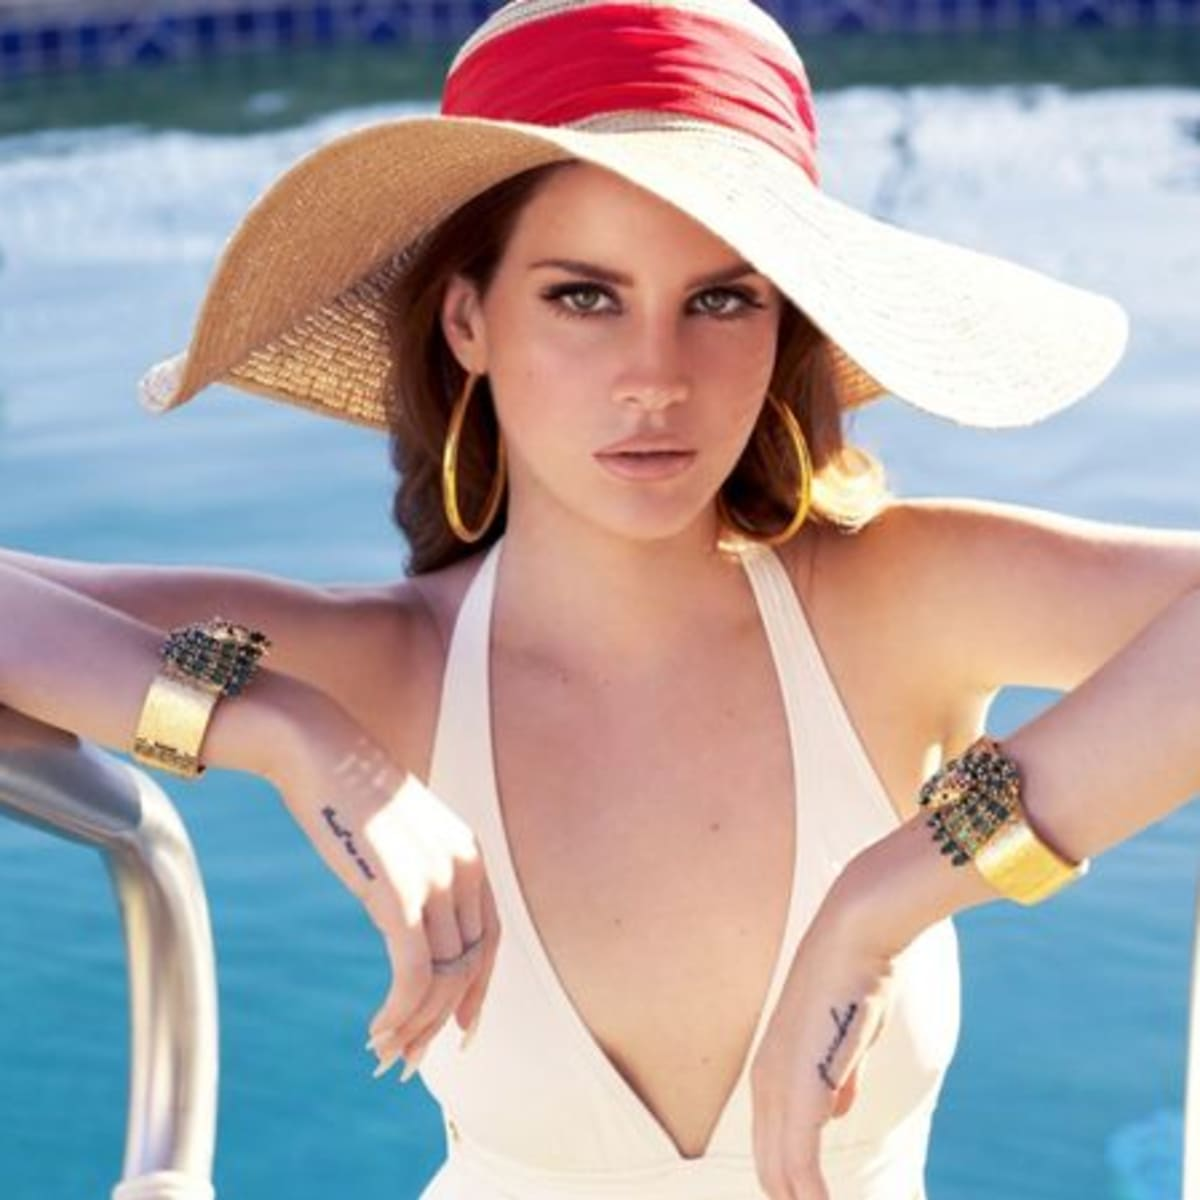 Edm Download Lana Del Rey Summertime Sadness Richy Ahmed Remix File Under House Music Magnetic Magazine